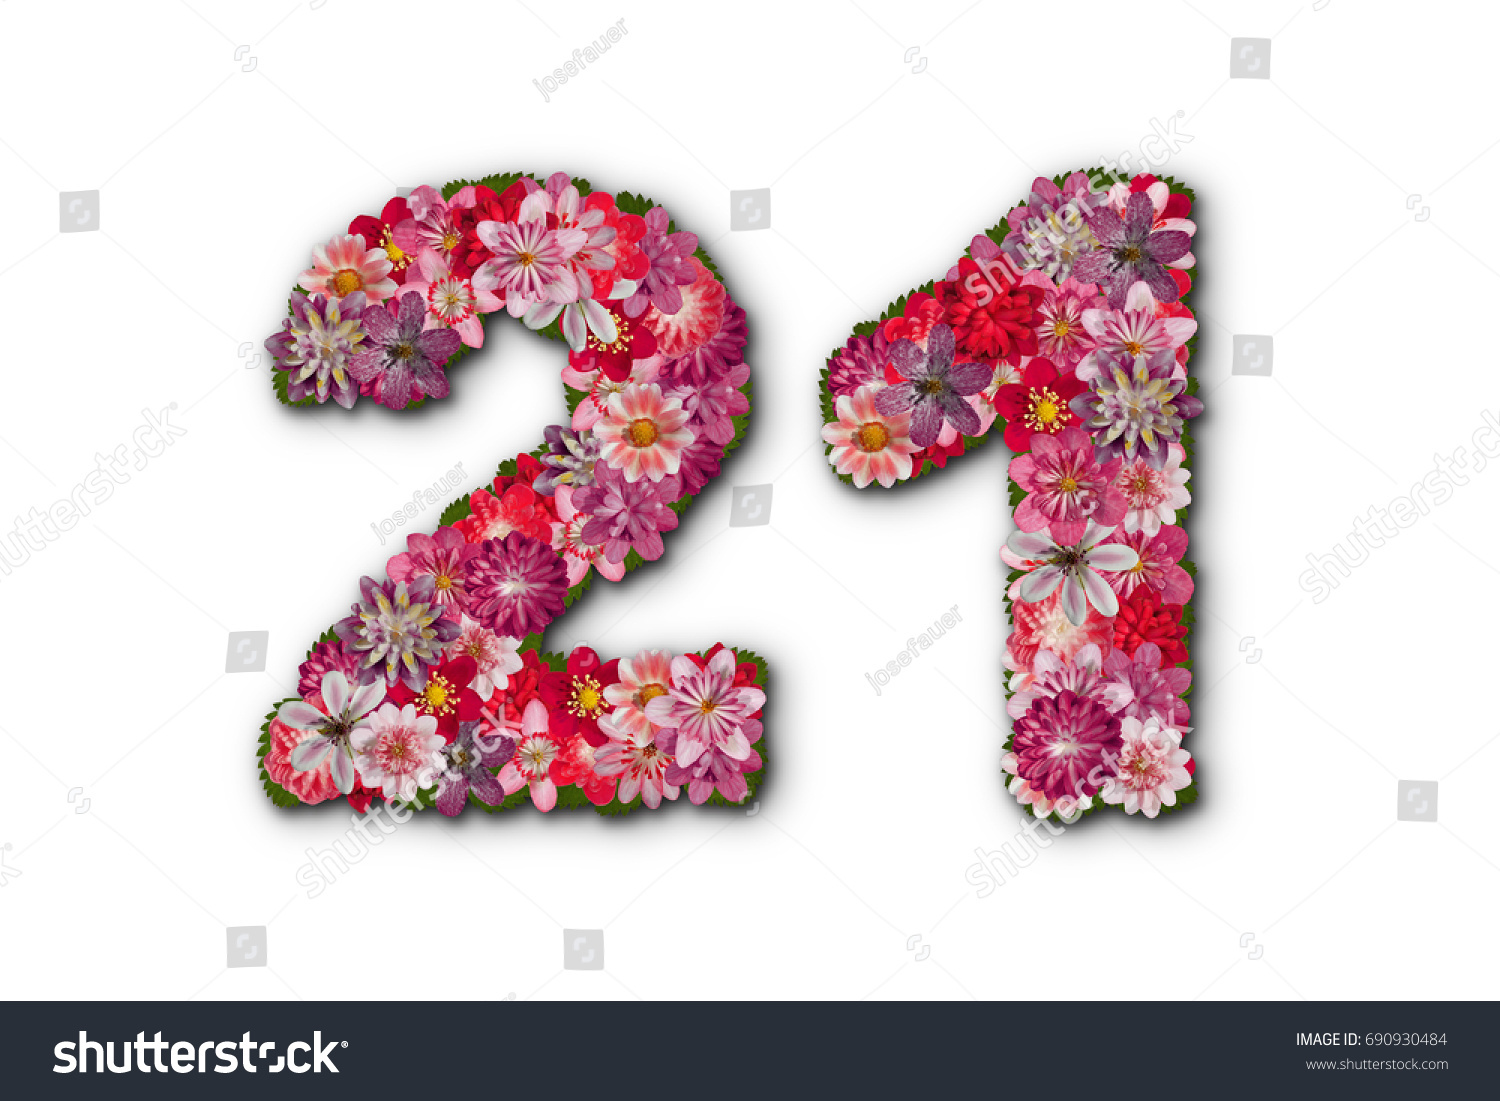 Number 21 birthday flowers stock photo edit now 690930484 number 21 birthday flowers izmirmasajfo